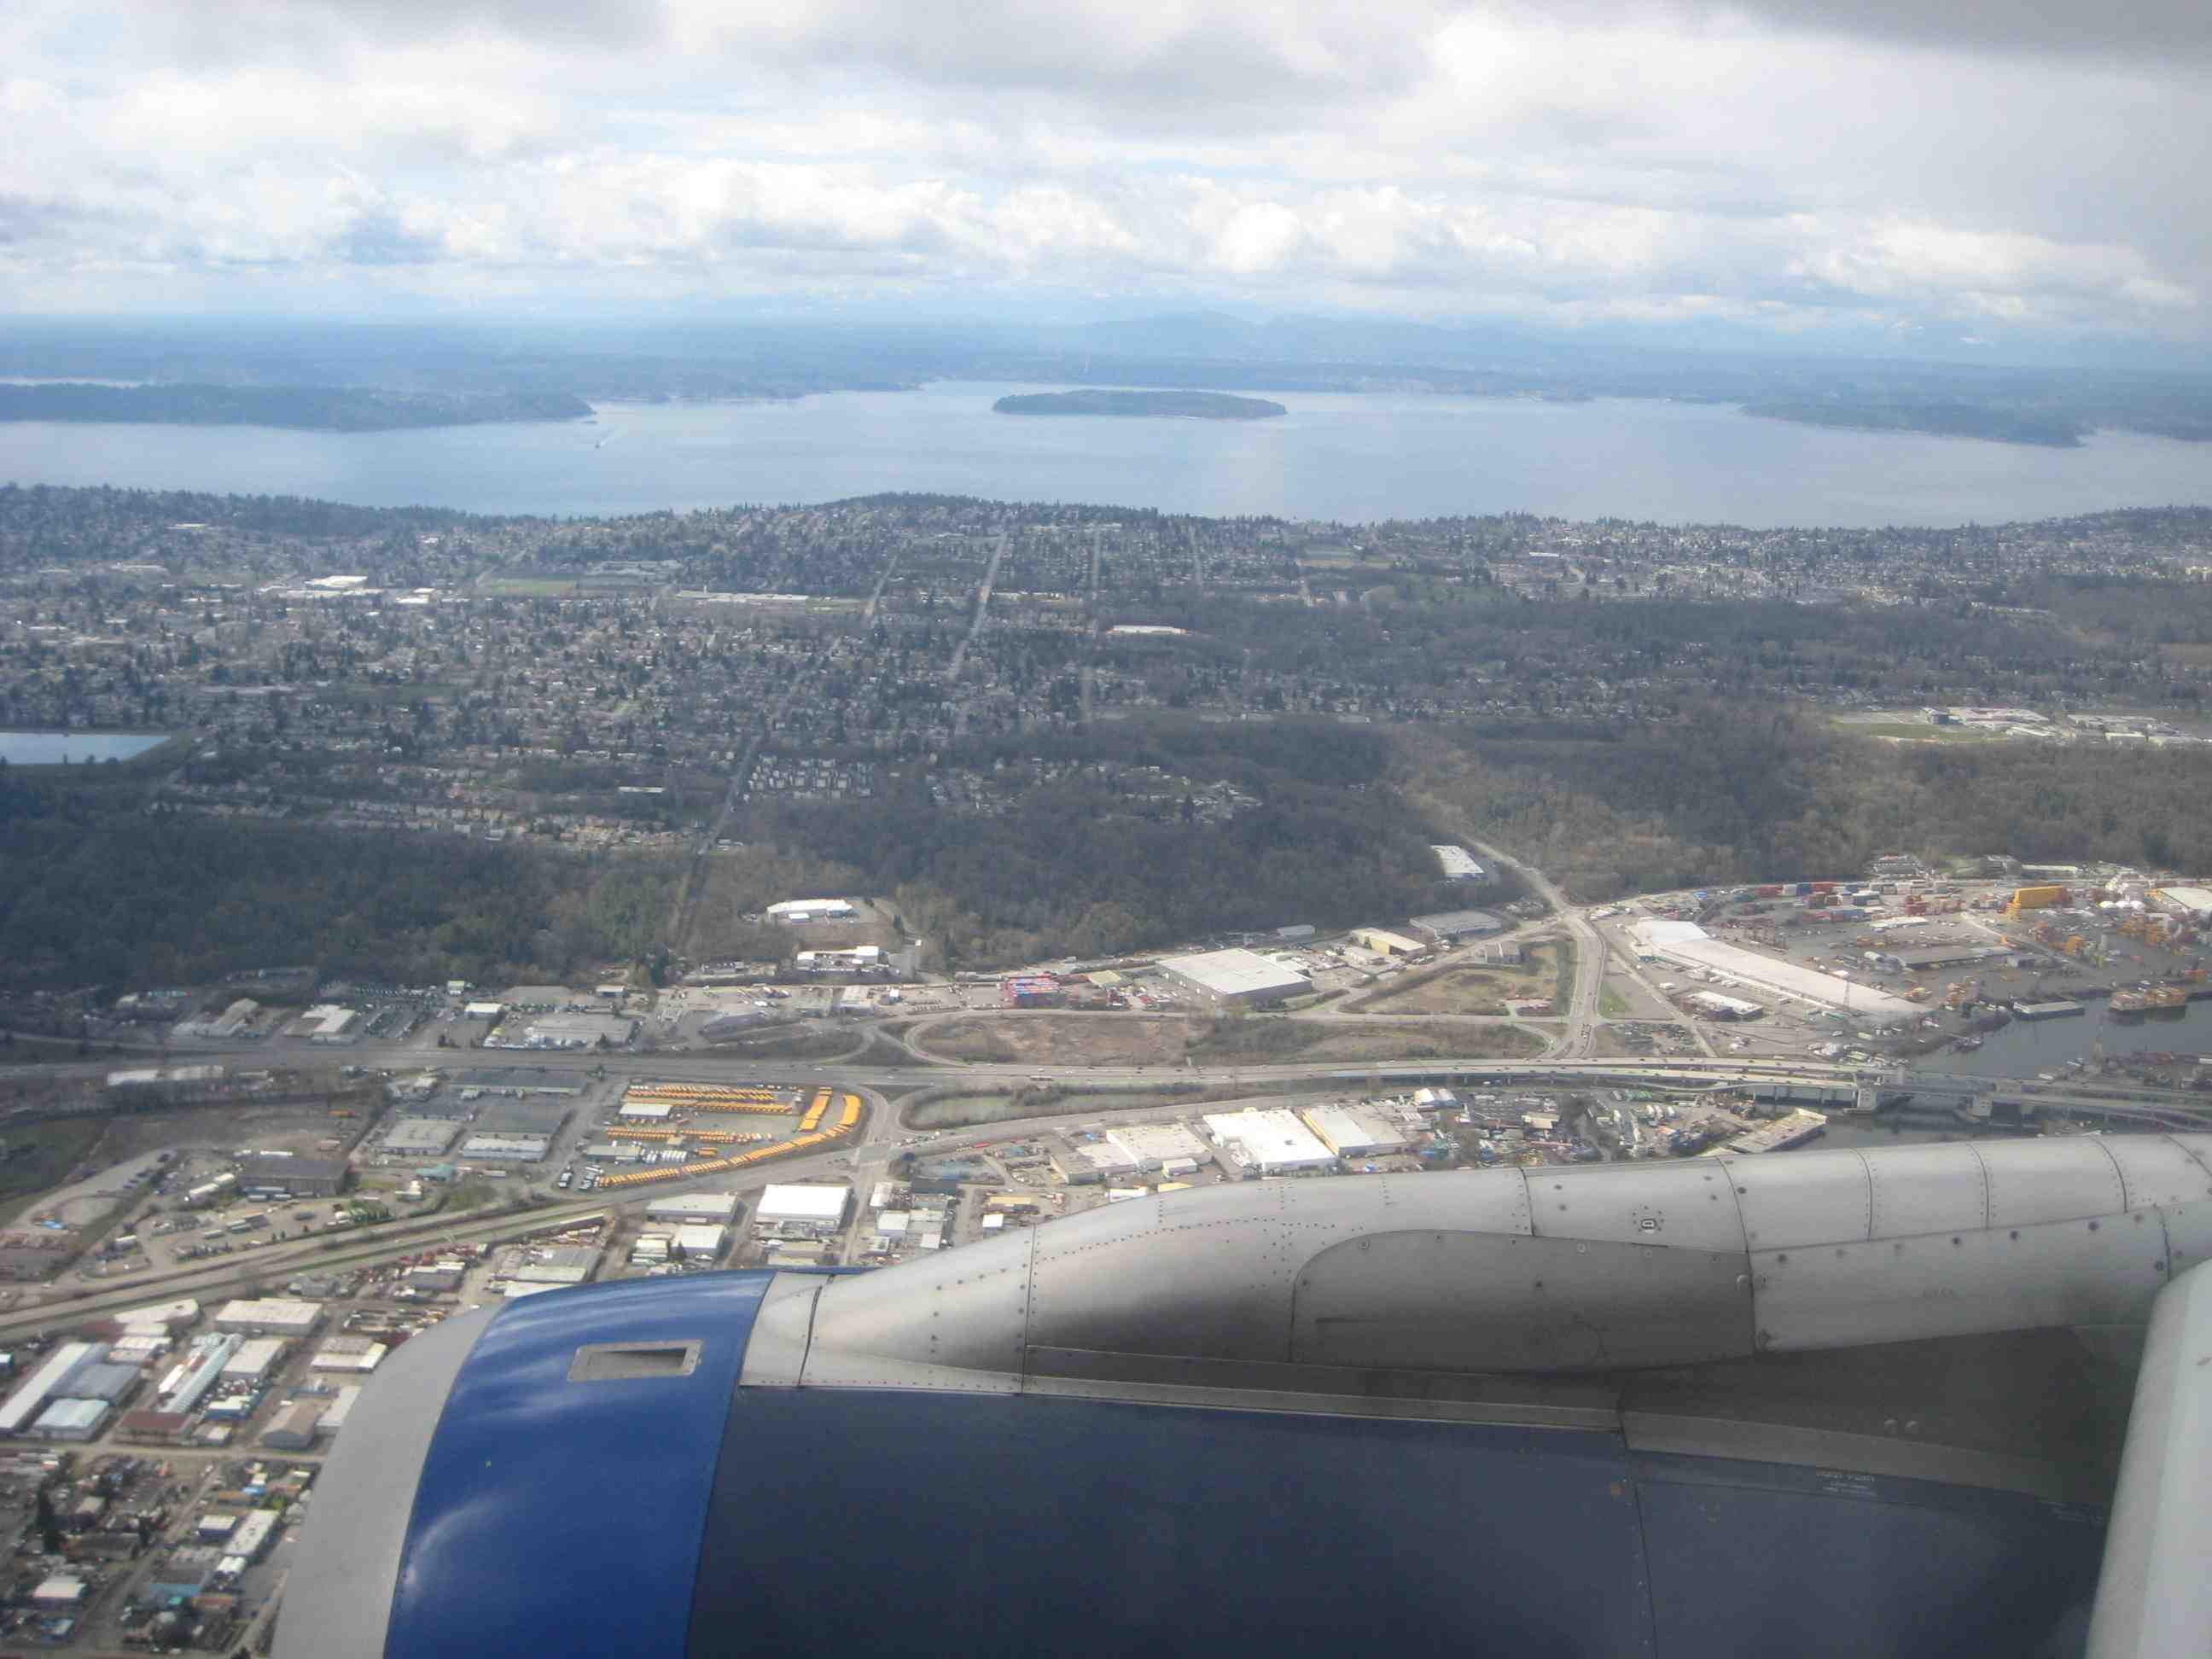 View of Seattle from a plane